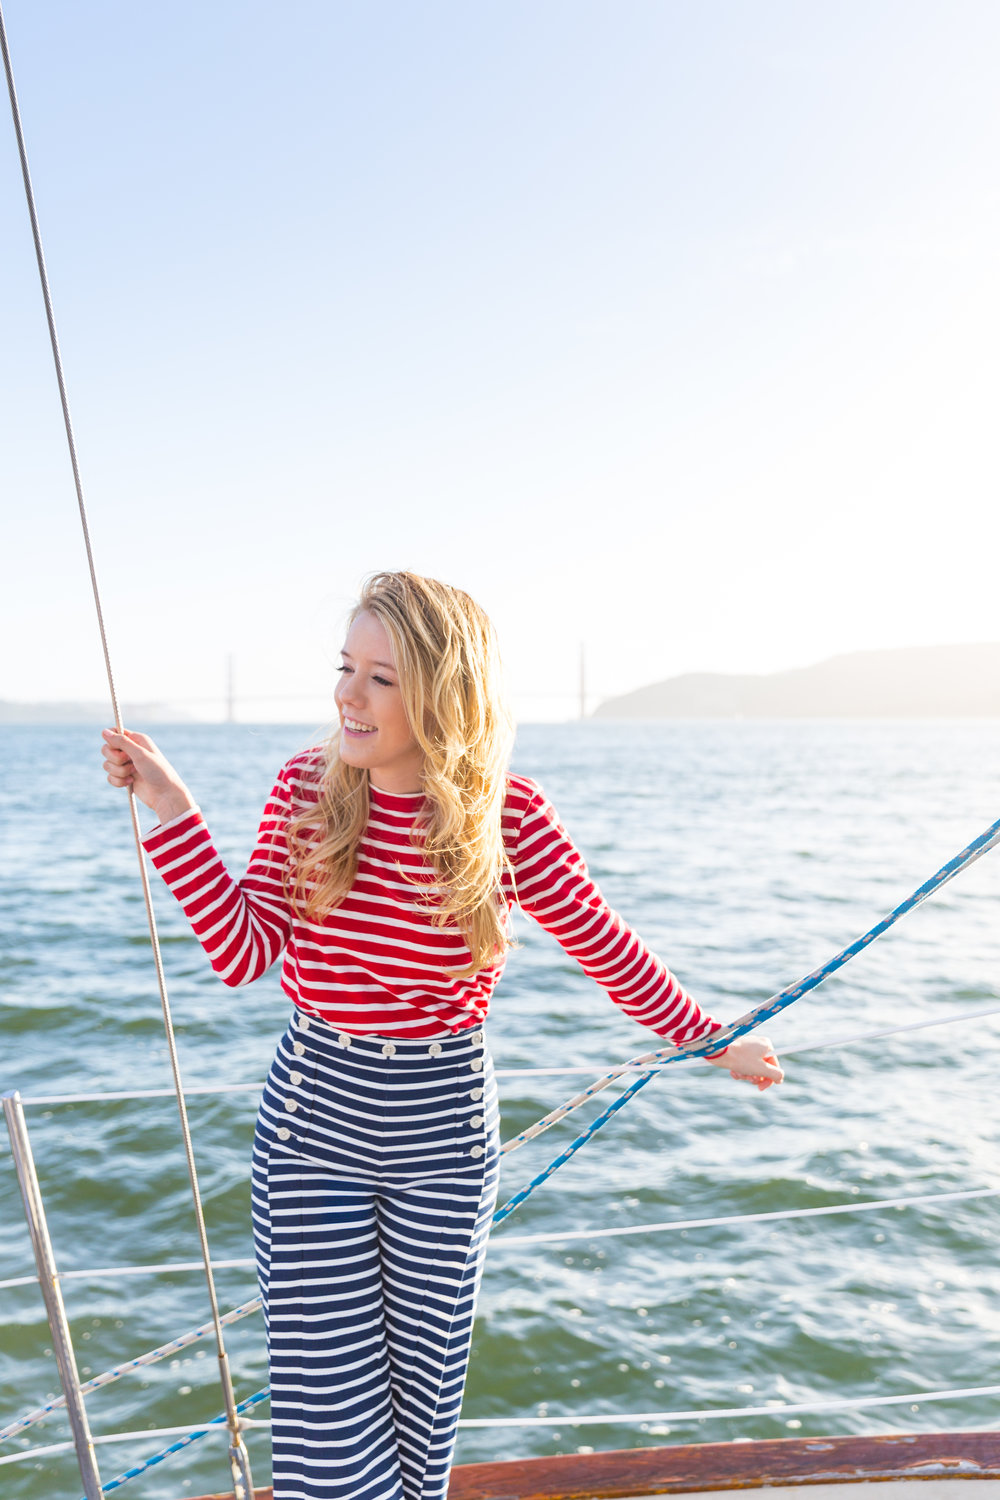 Striped Nautical Sunset Sail Outfit San Francisco-11.jpg